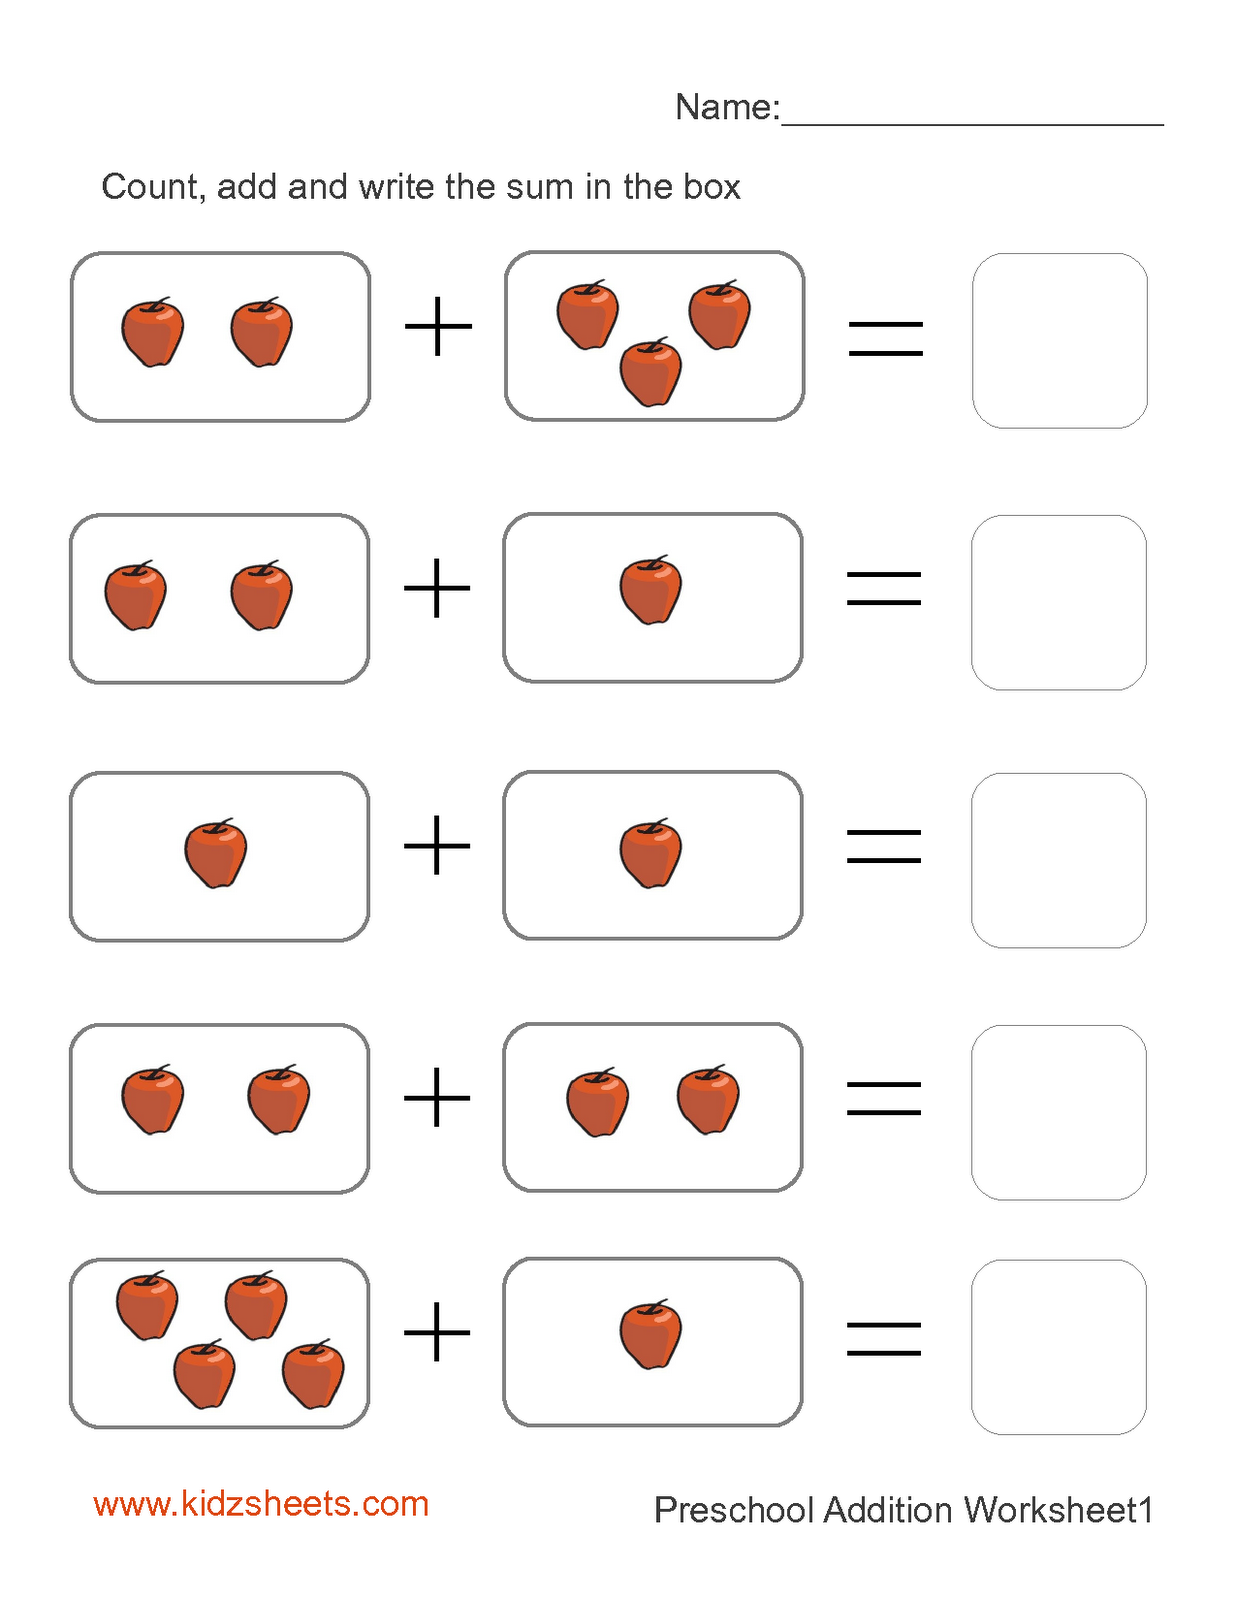 6 Best Images of Printable Kindergarten Math Addition Worksheets ...Free Printable Preschool Addition Worksheets